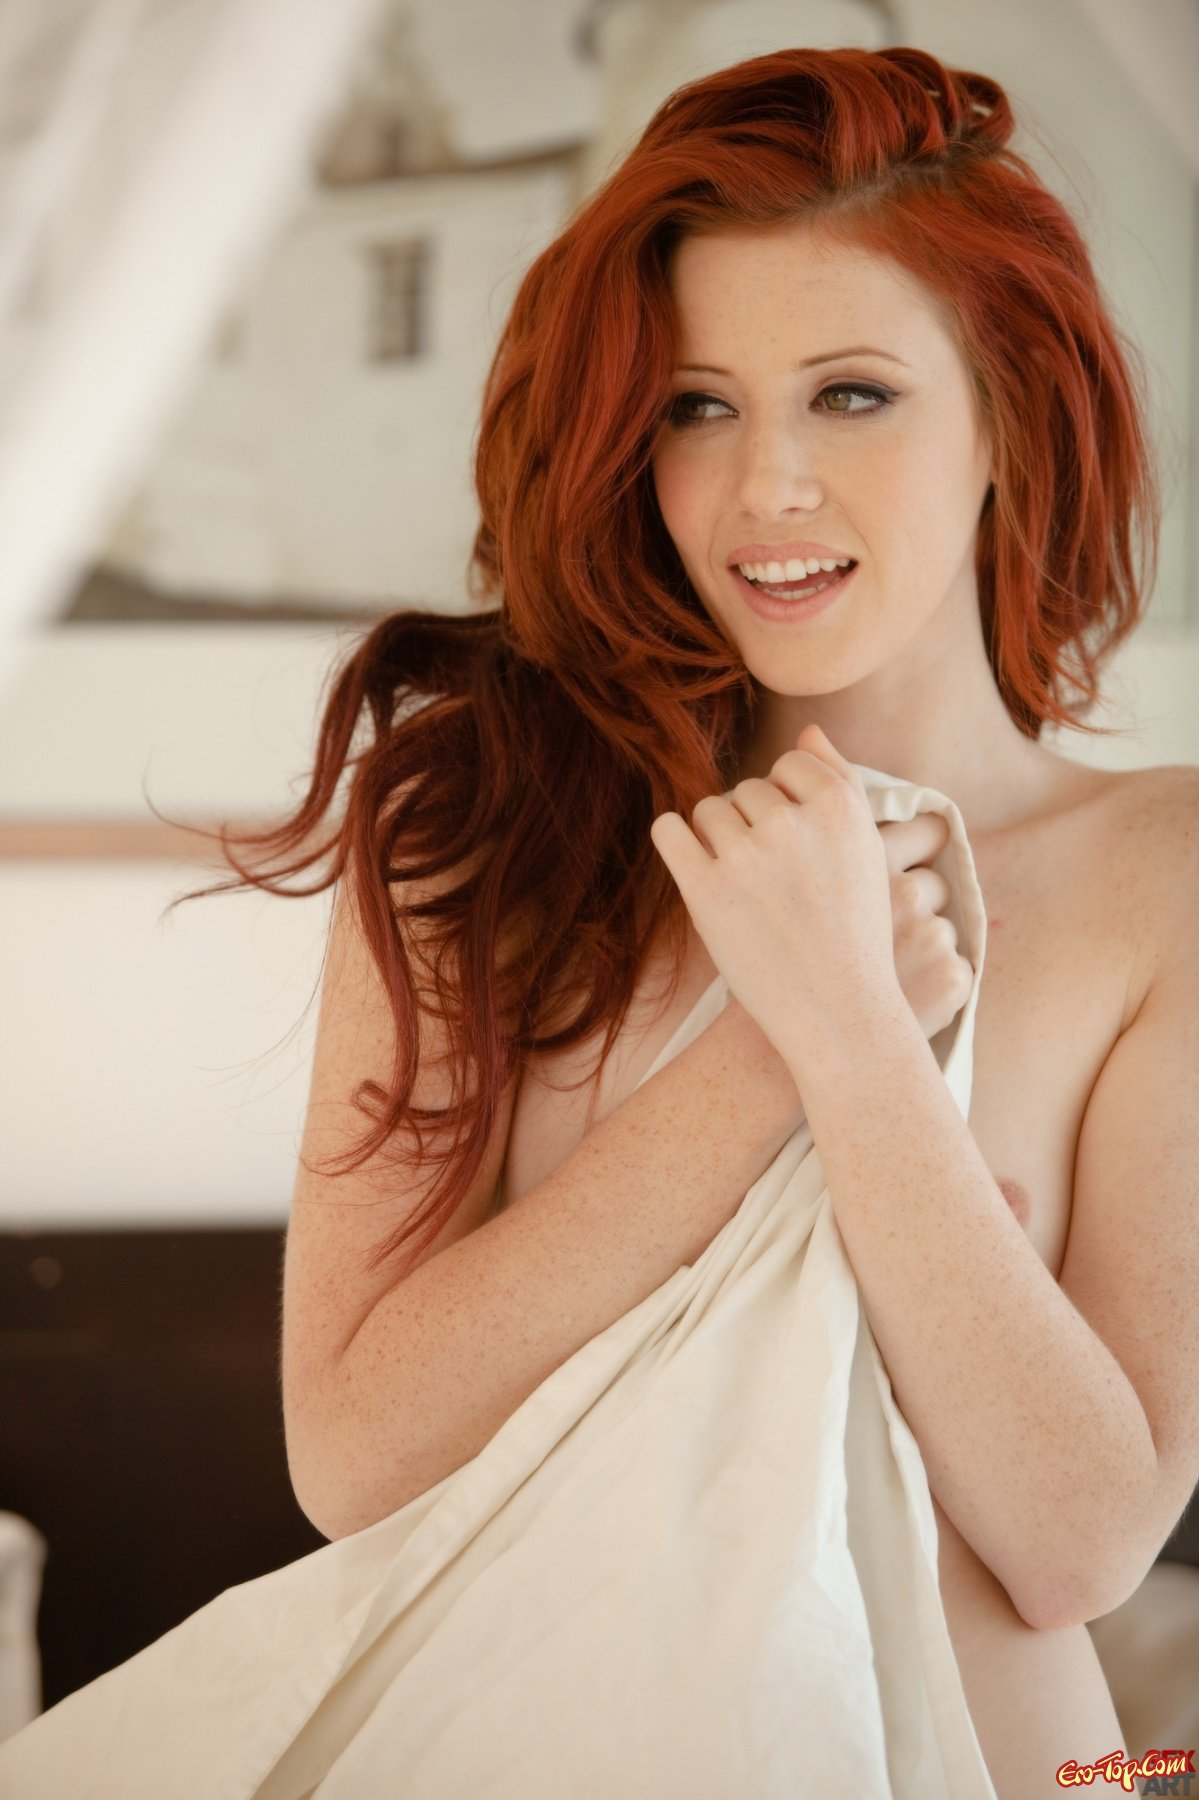 young-redhead-stripper-naked-gomez-naked-hot